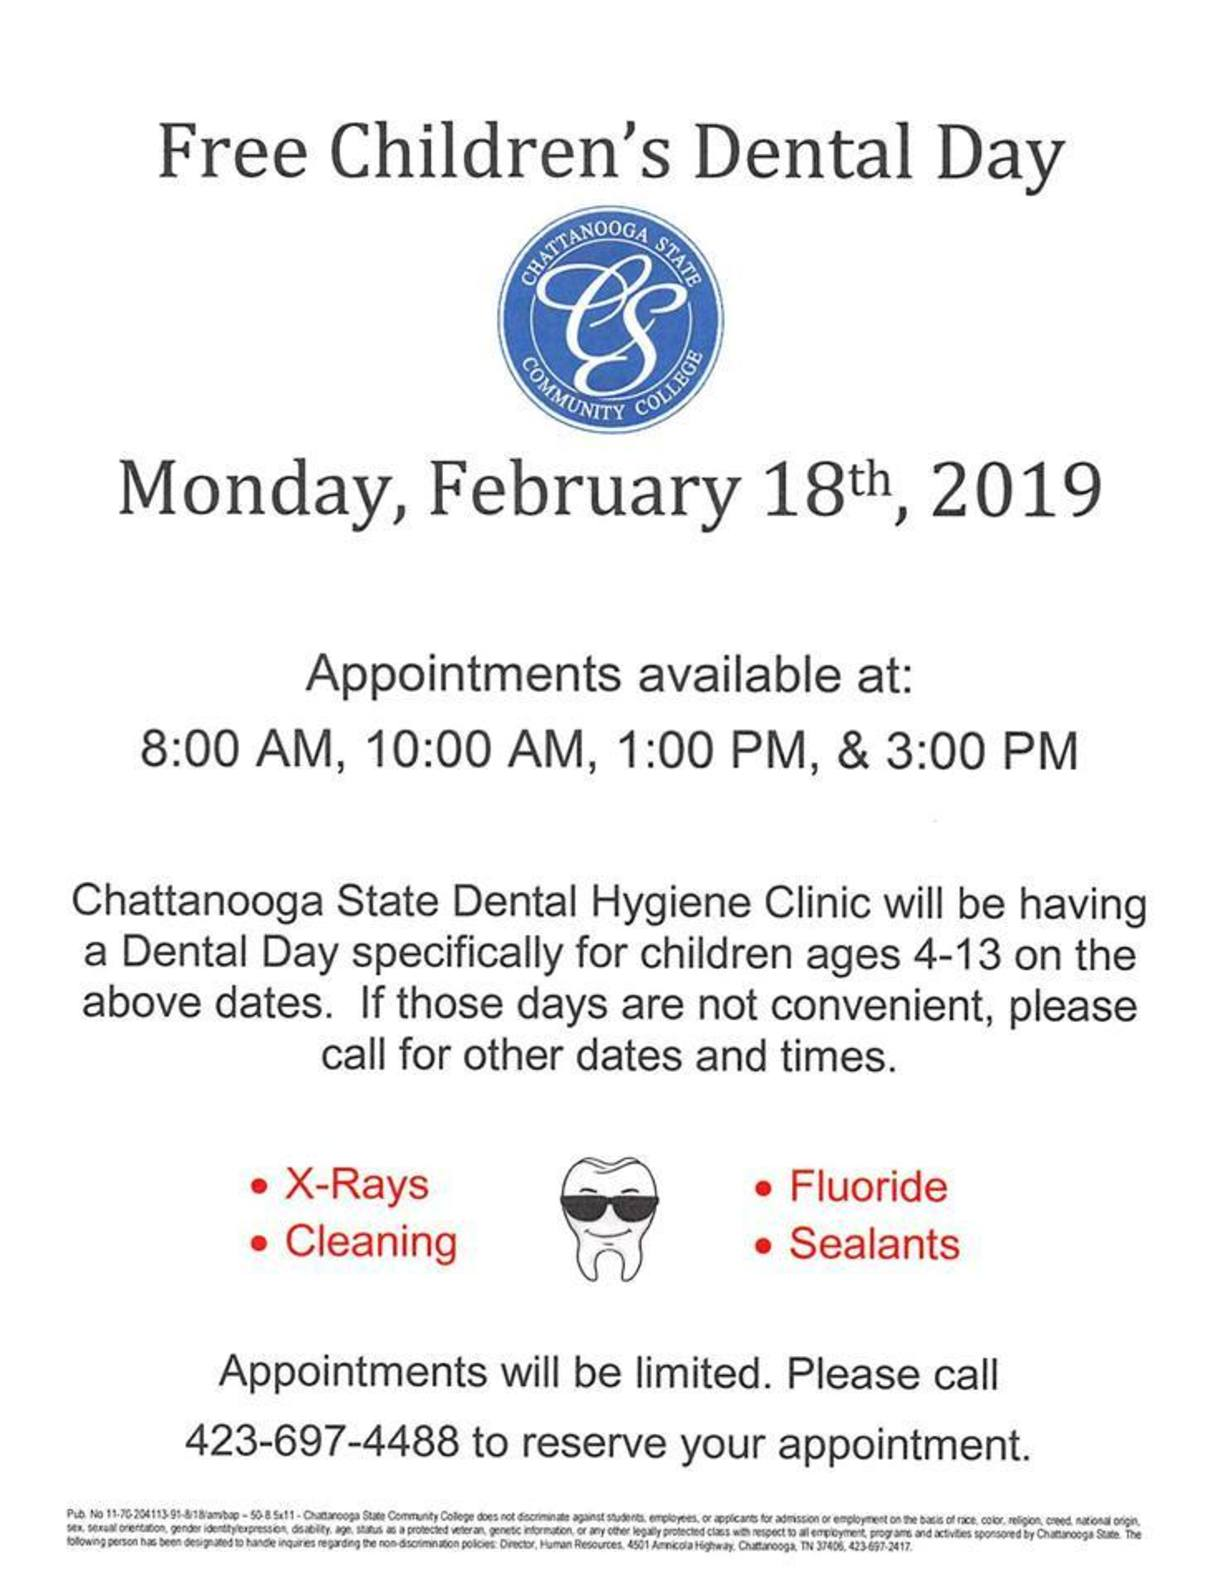 Free Children's Dental Day Flyer